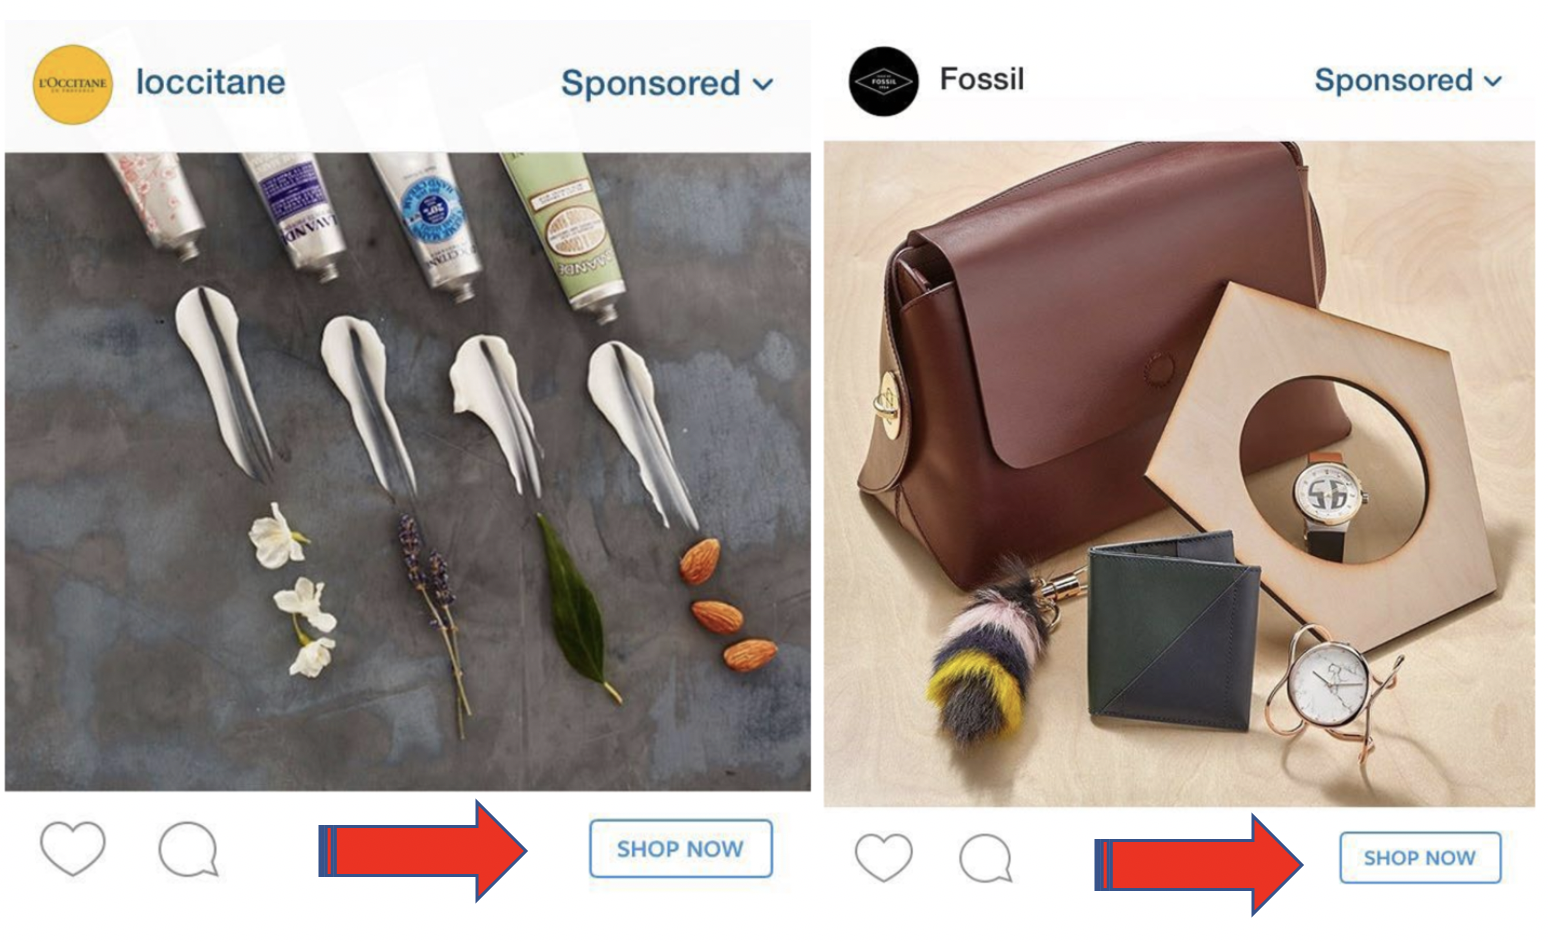 Instagram CTA on Ads – Shop Now!